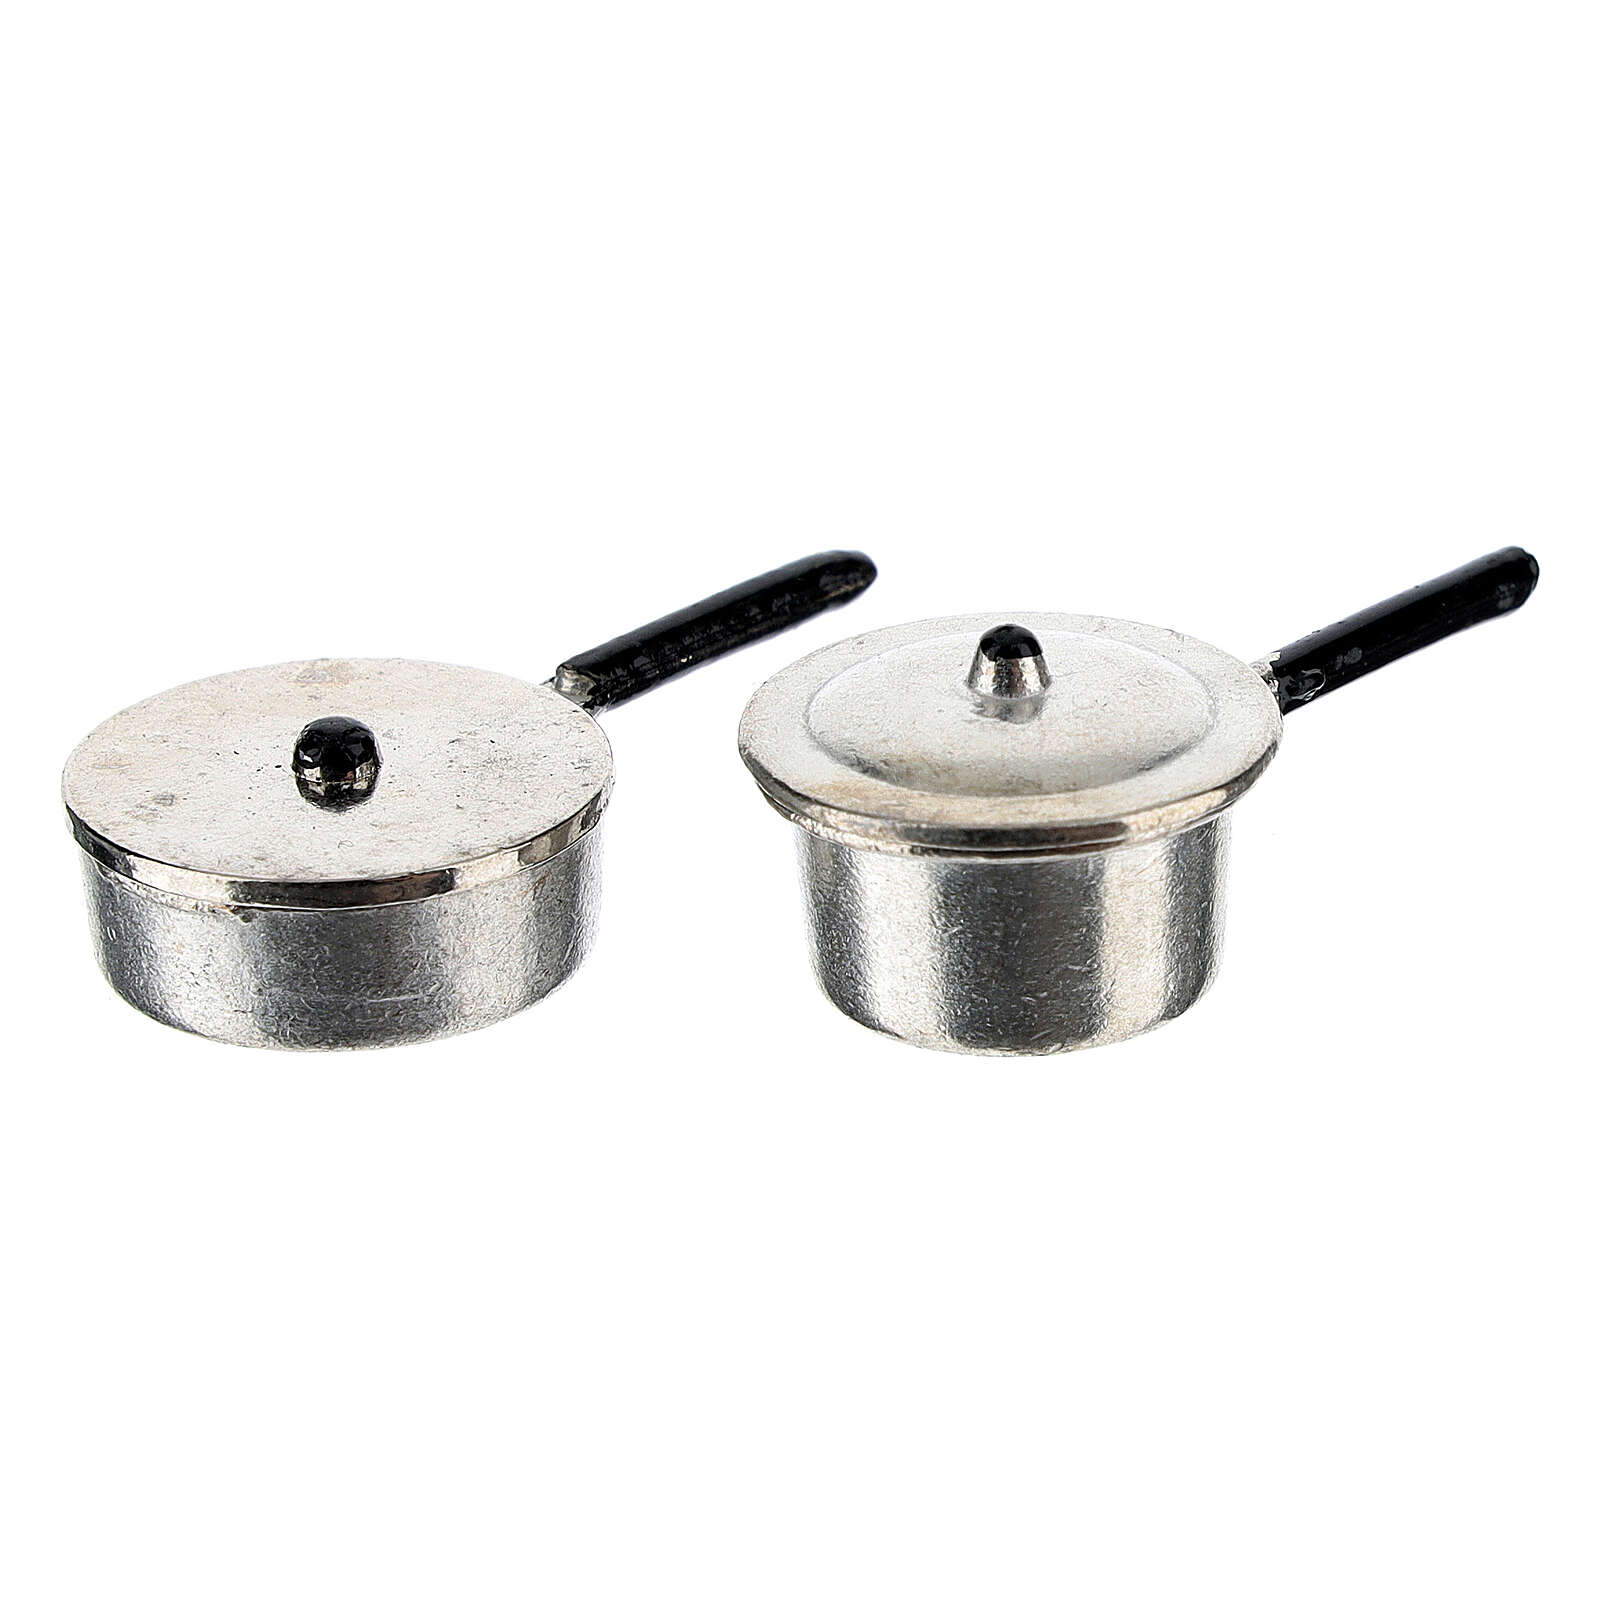 Set of 4 metal cooking pots for Nativity Scene with 6-8 cm figurines 4